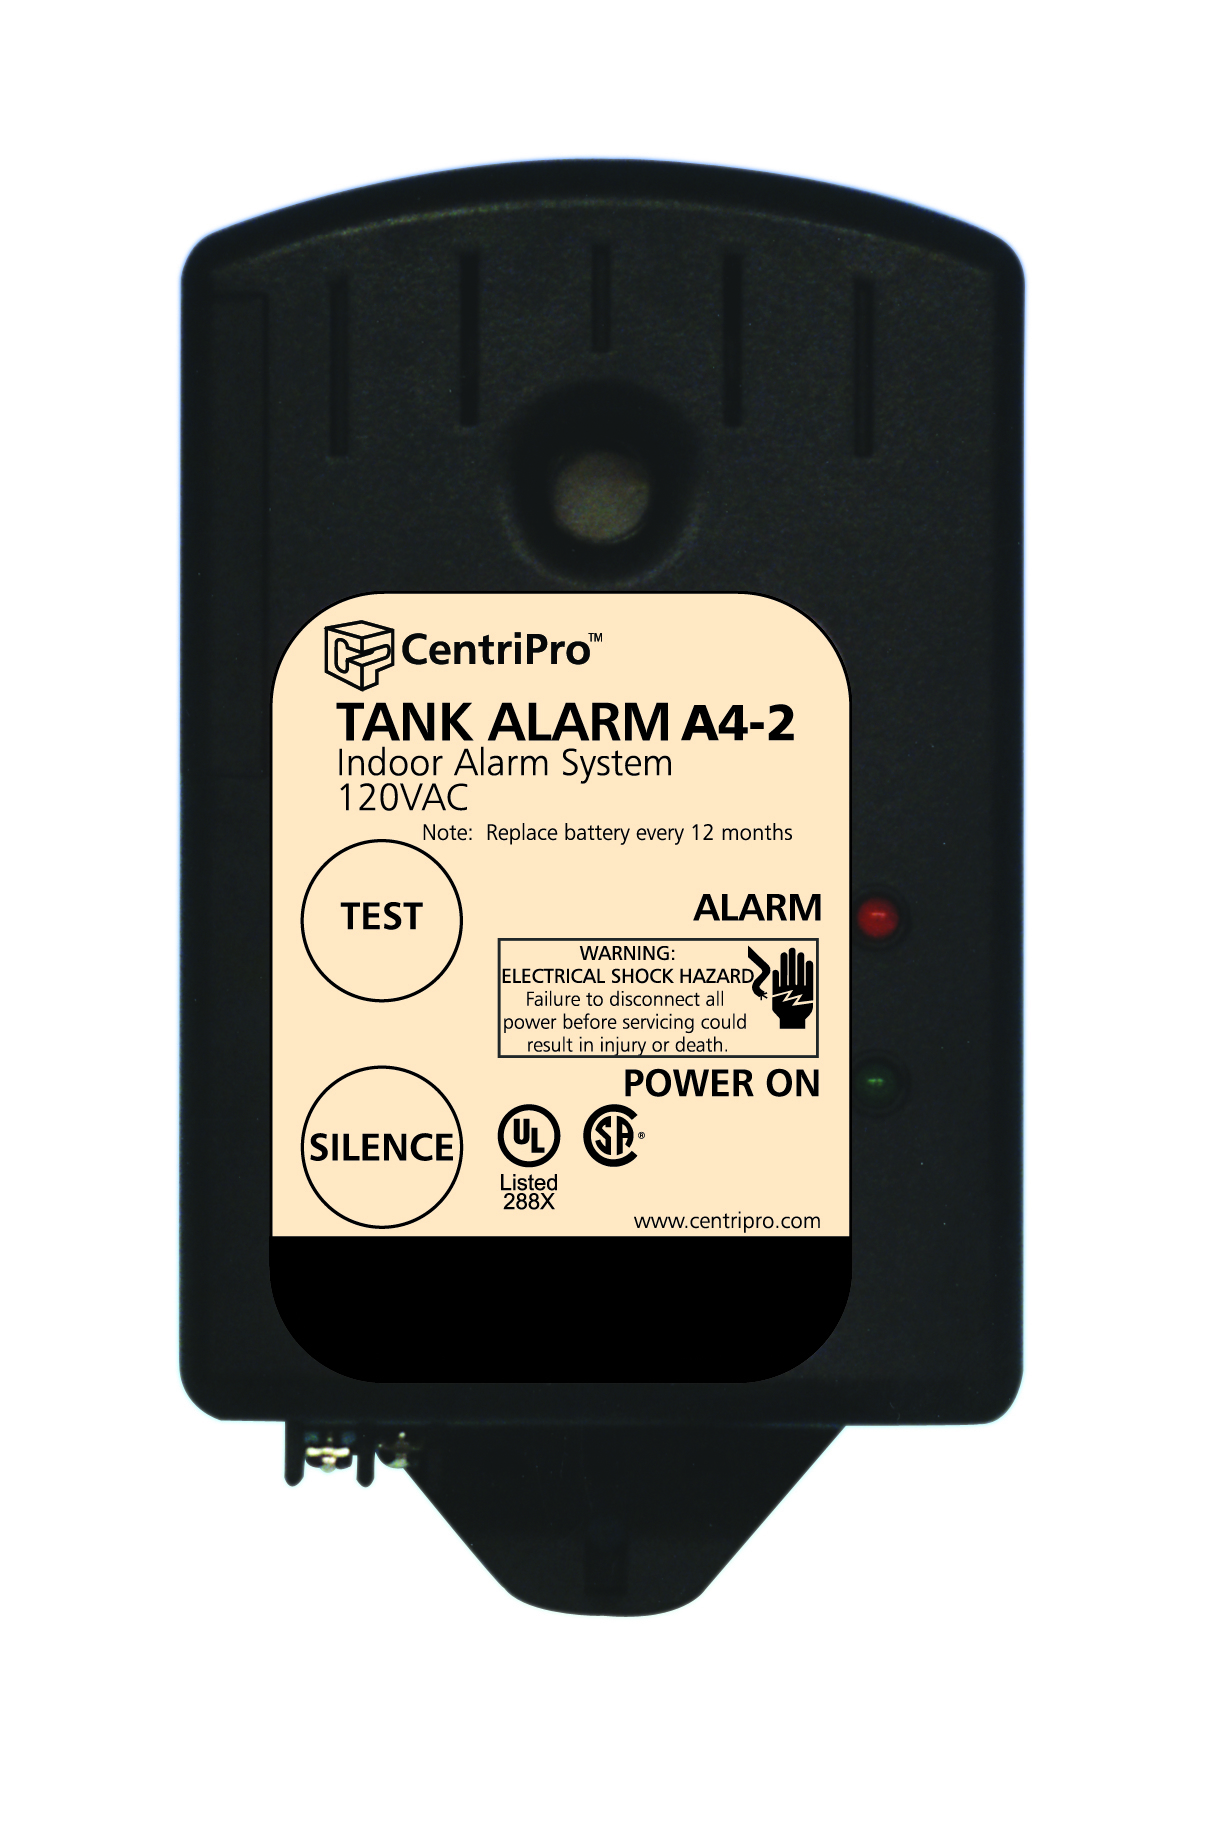 A4-2 (AB Alarm with Battery Backup)